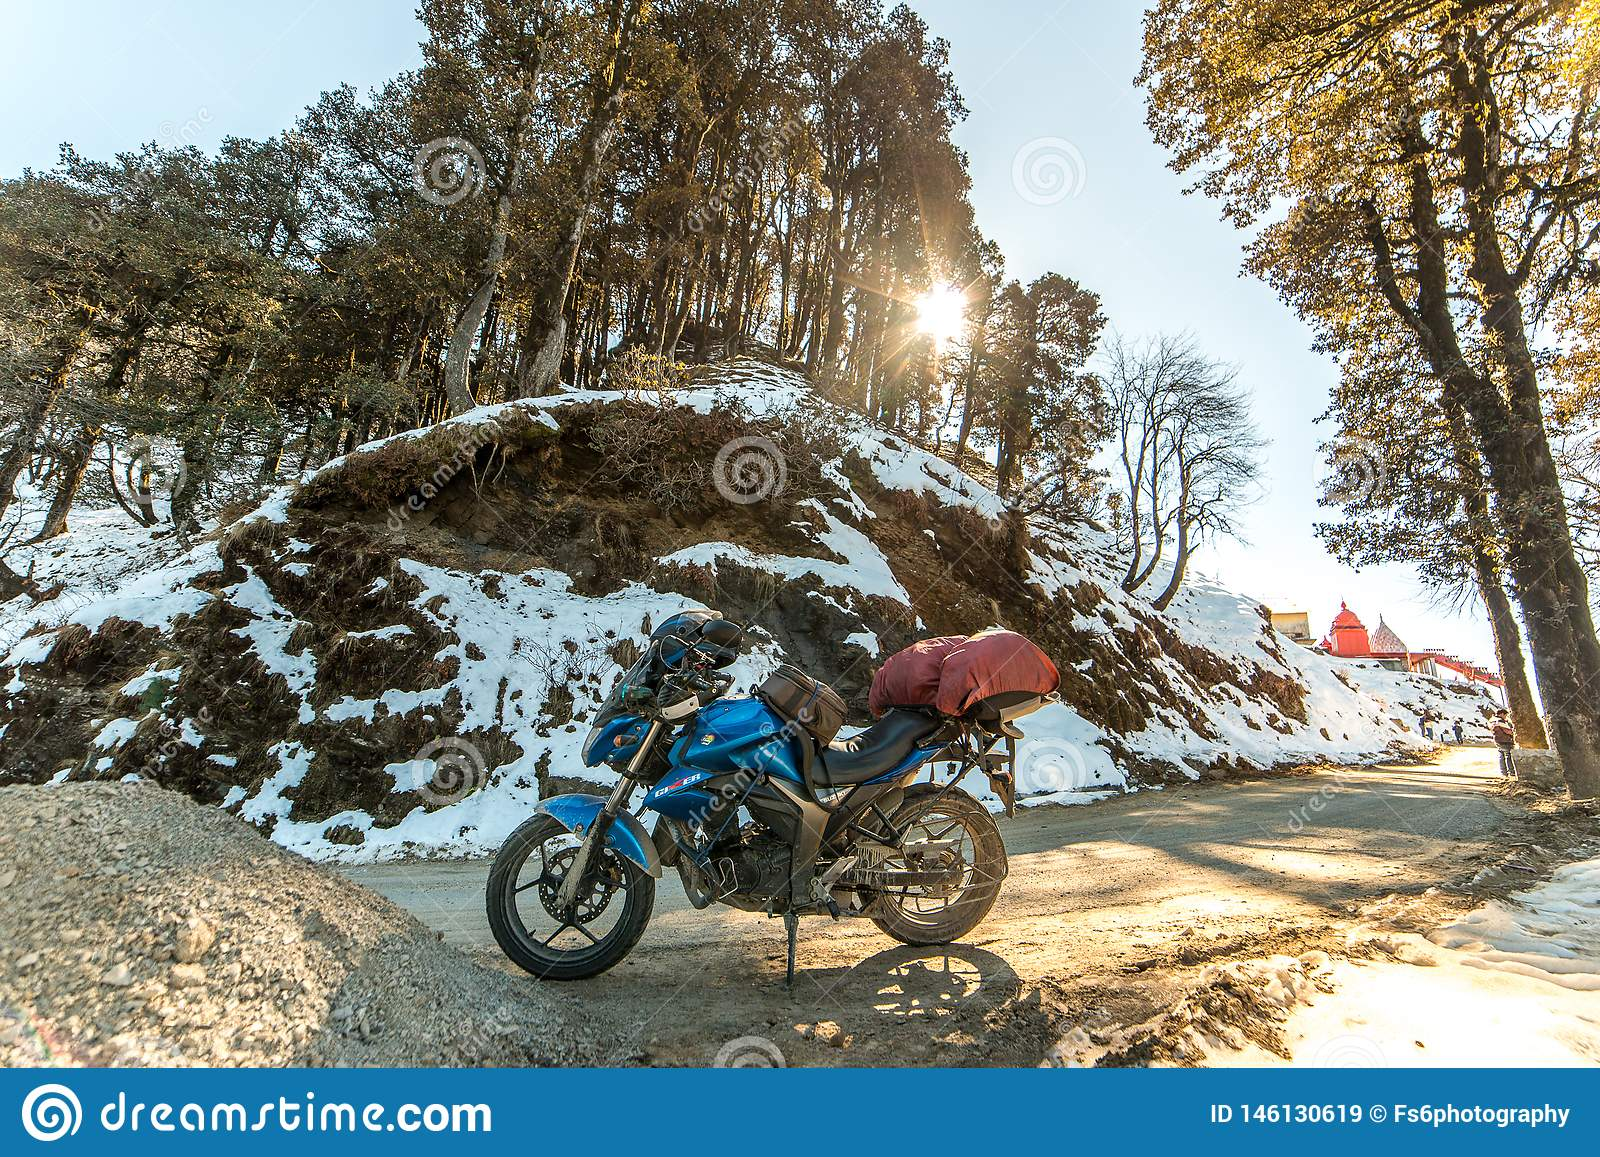 Kullu, Himachal Pradesh, India - November 24, 2019 : Motorcycle ride on winter slippery road in himalayas